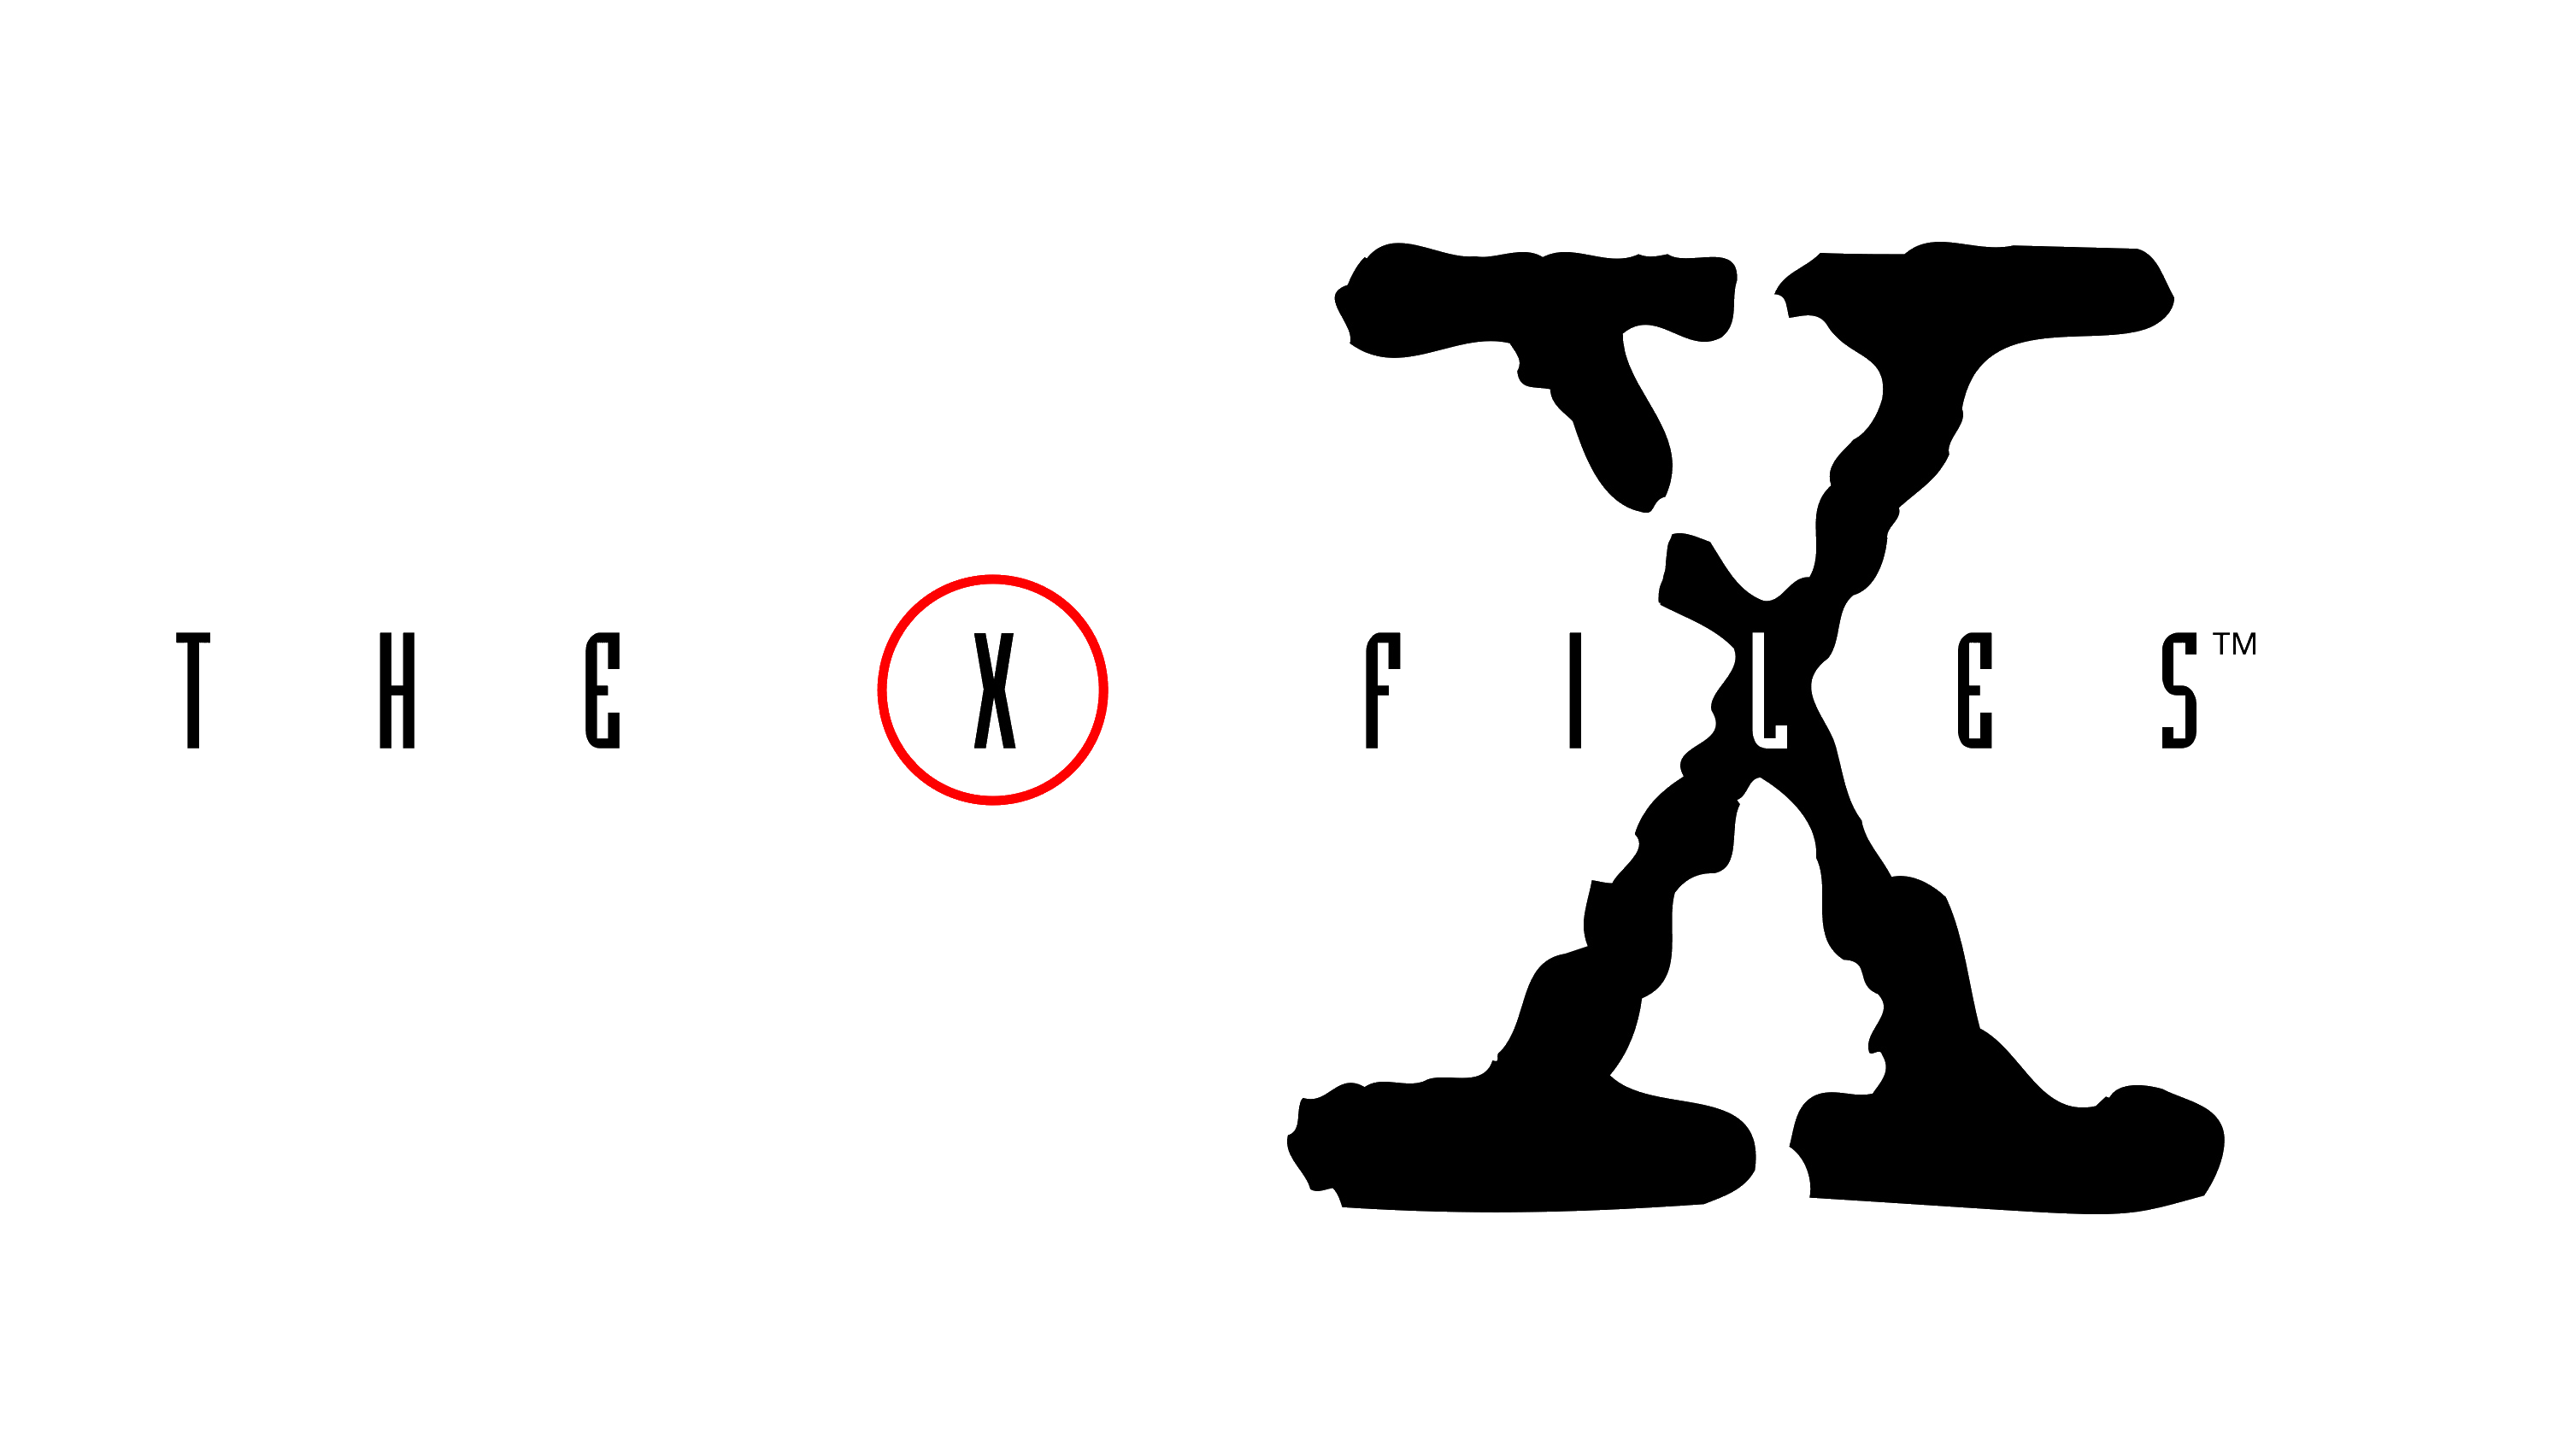 x logo for. What are png files